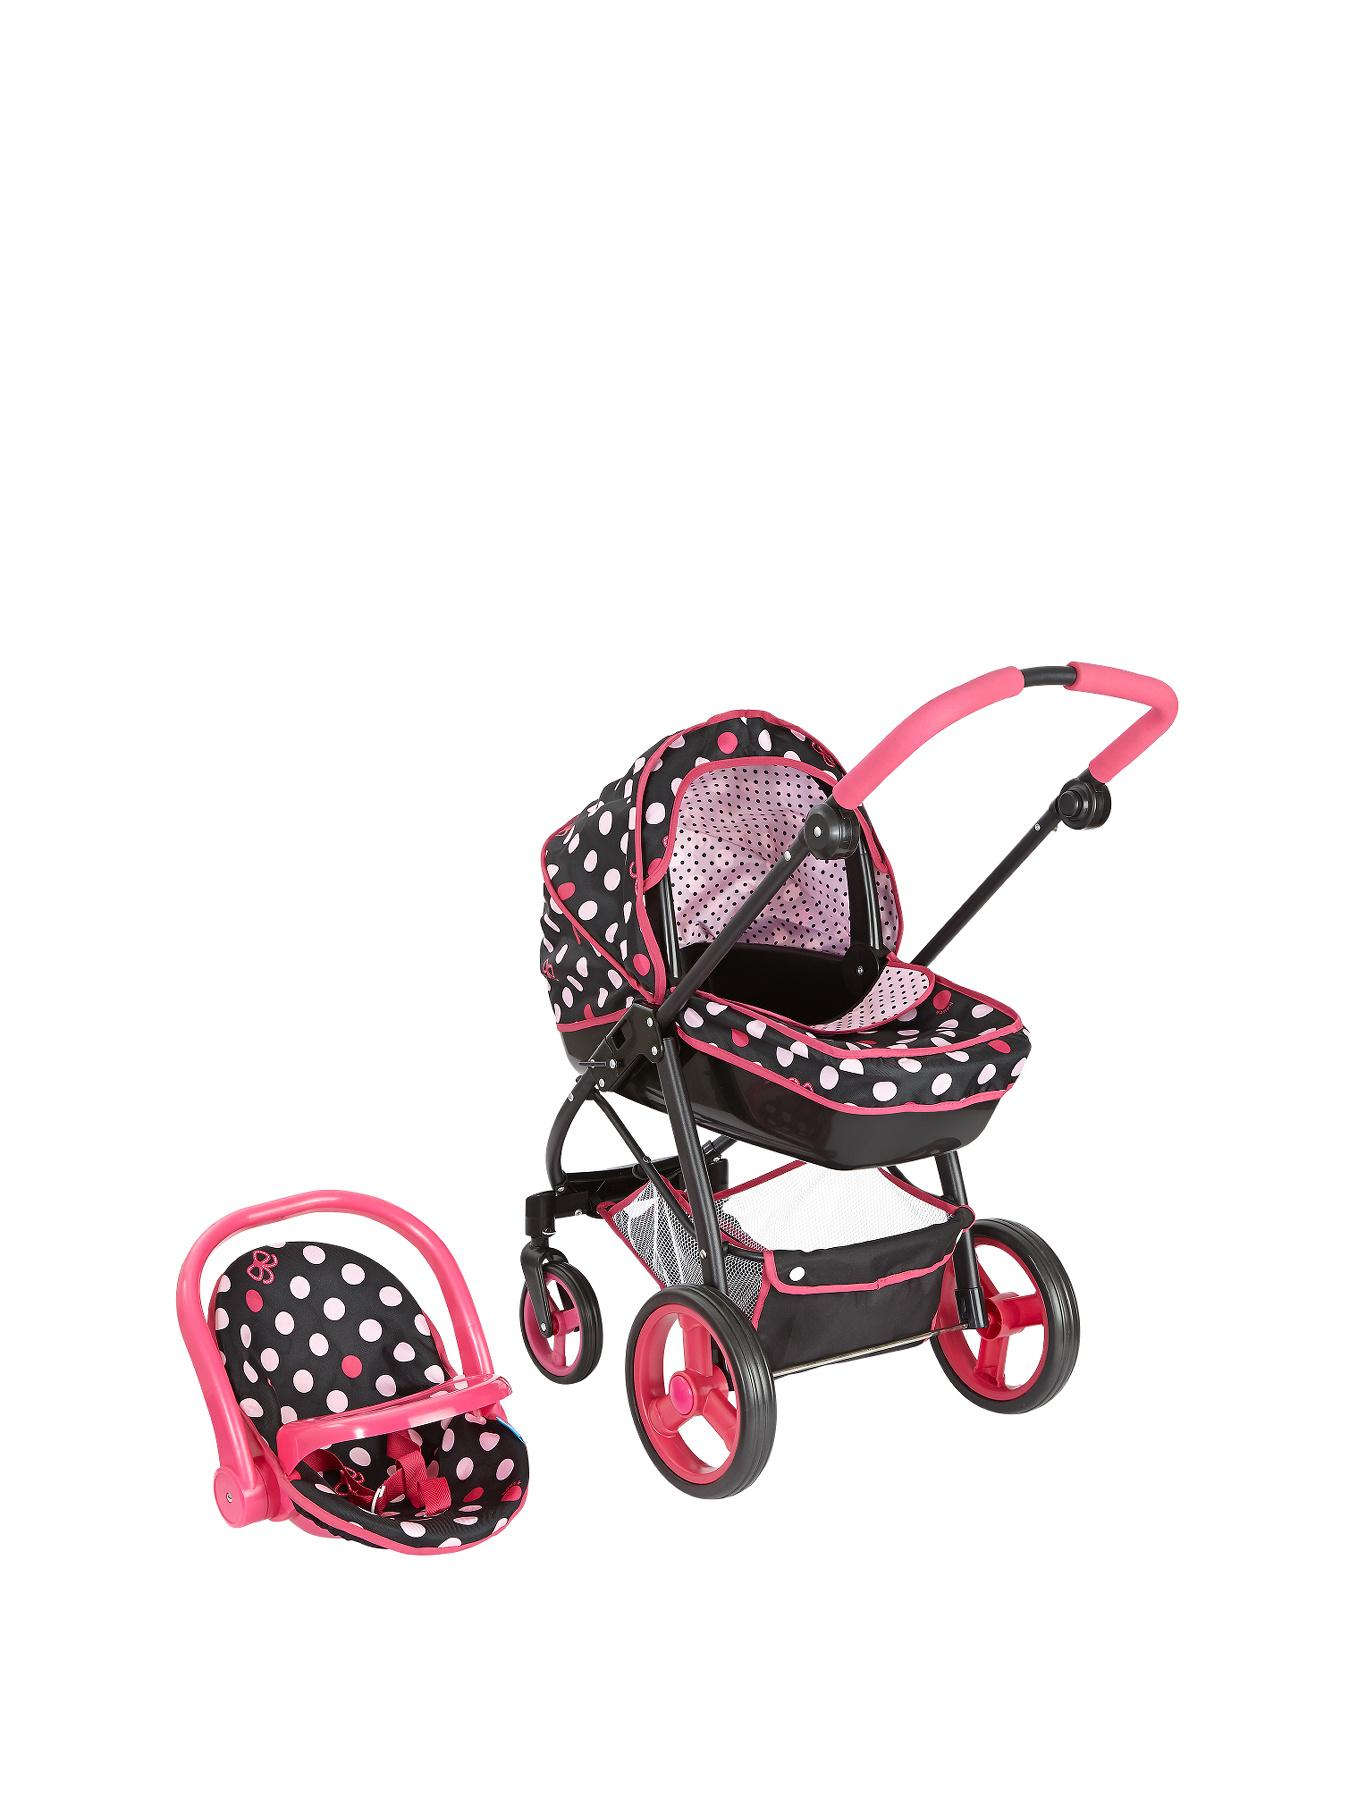 Hauck Pink Lady Doll Georgia 6-in-1 Travel System